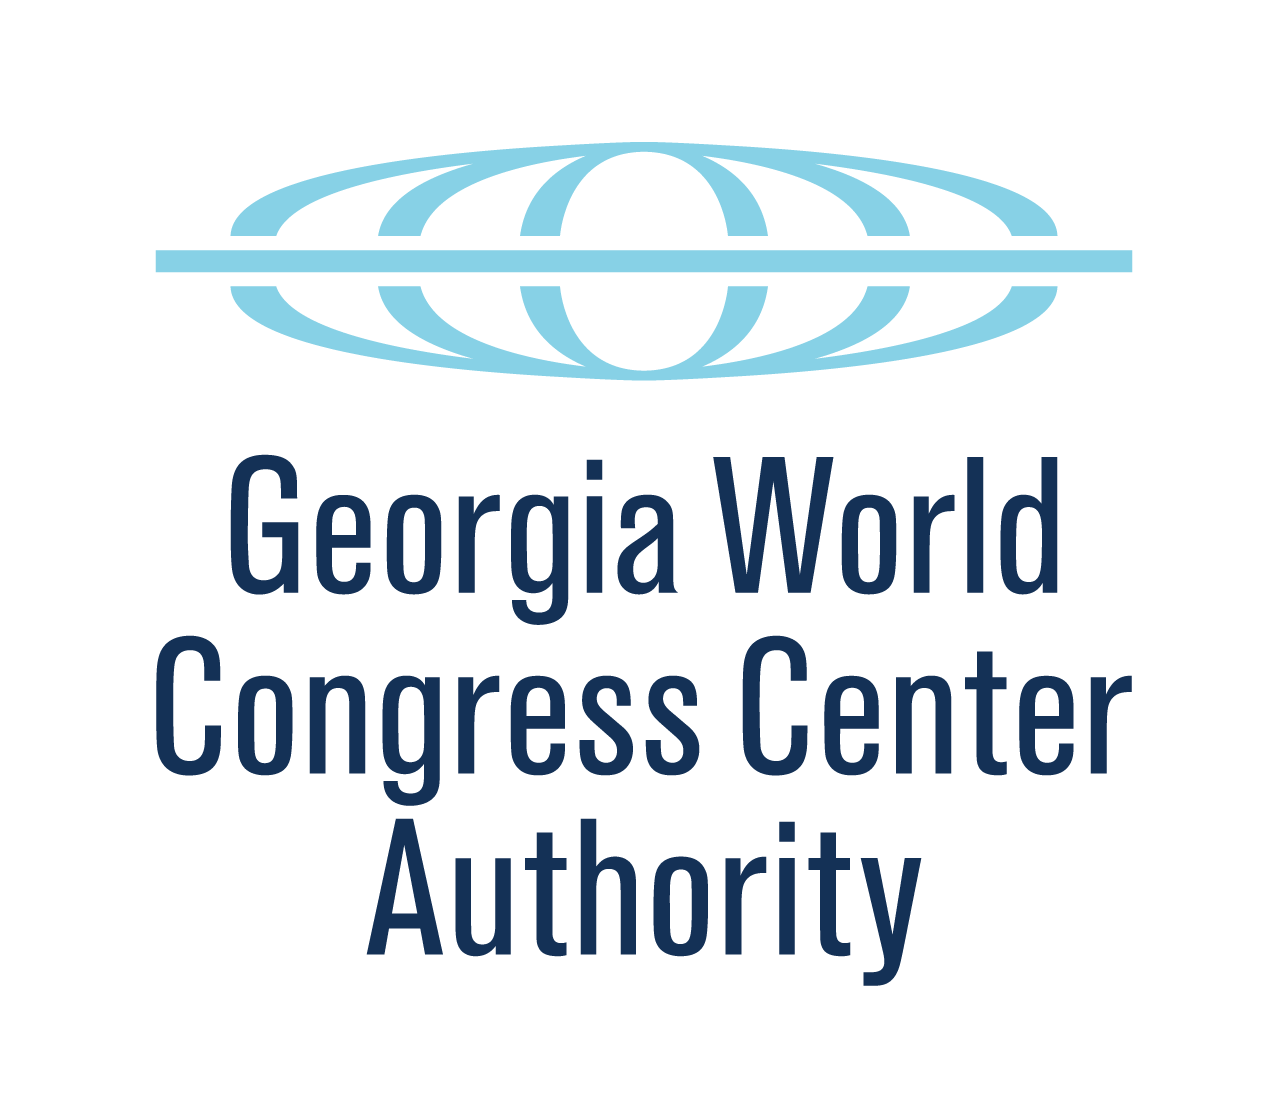 Georgia World Congress Center Authority Company Logo